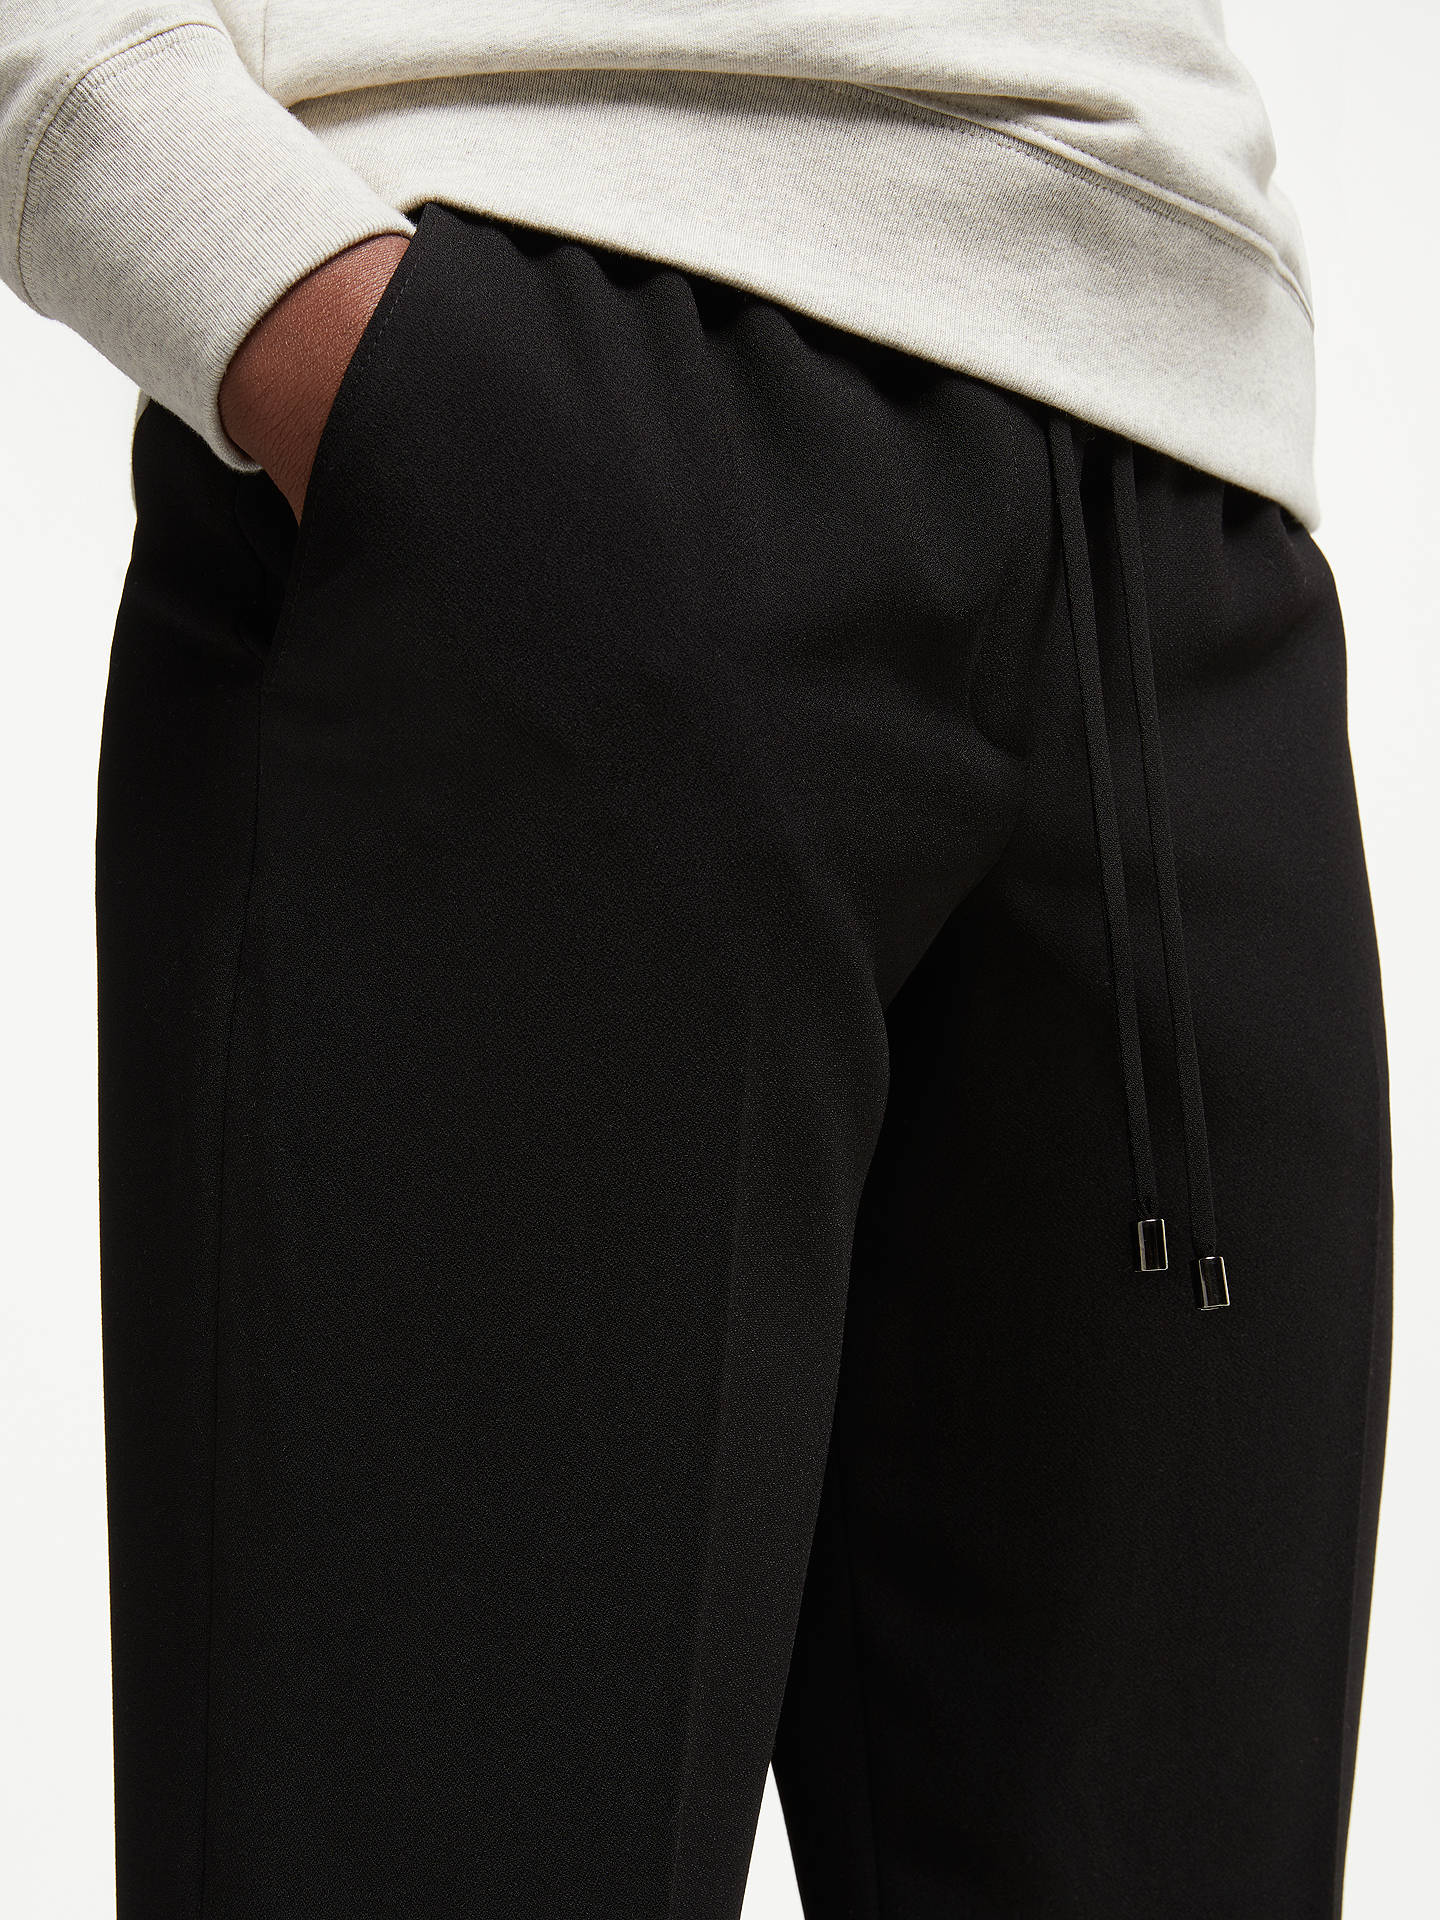 BuyJohn Lewis & Partners Woven Jogger Trousers, Black, 8 Online at johnlewis.com